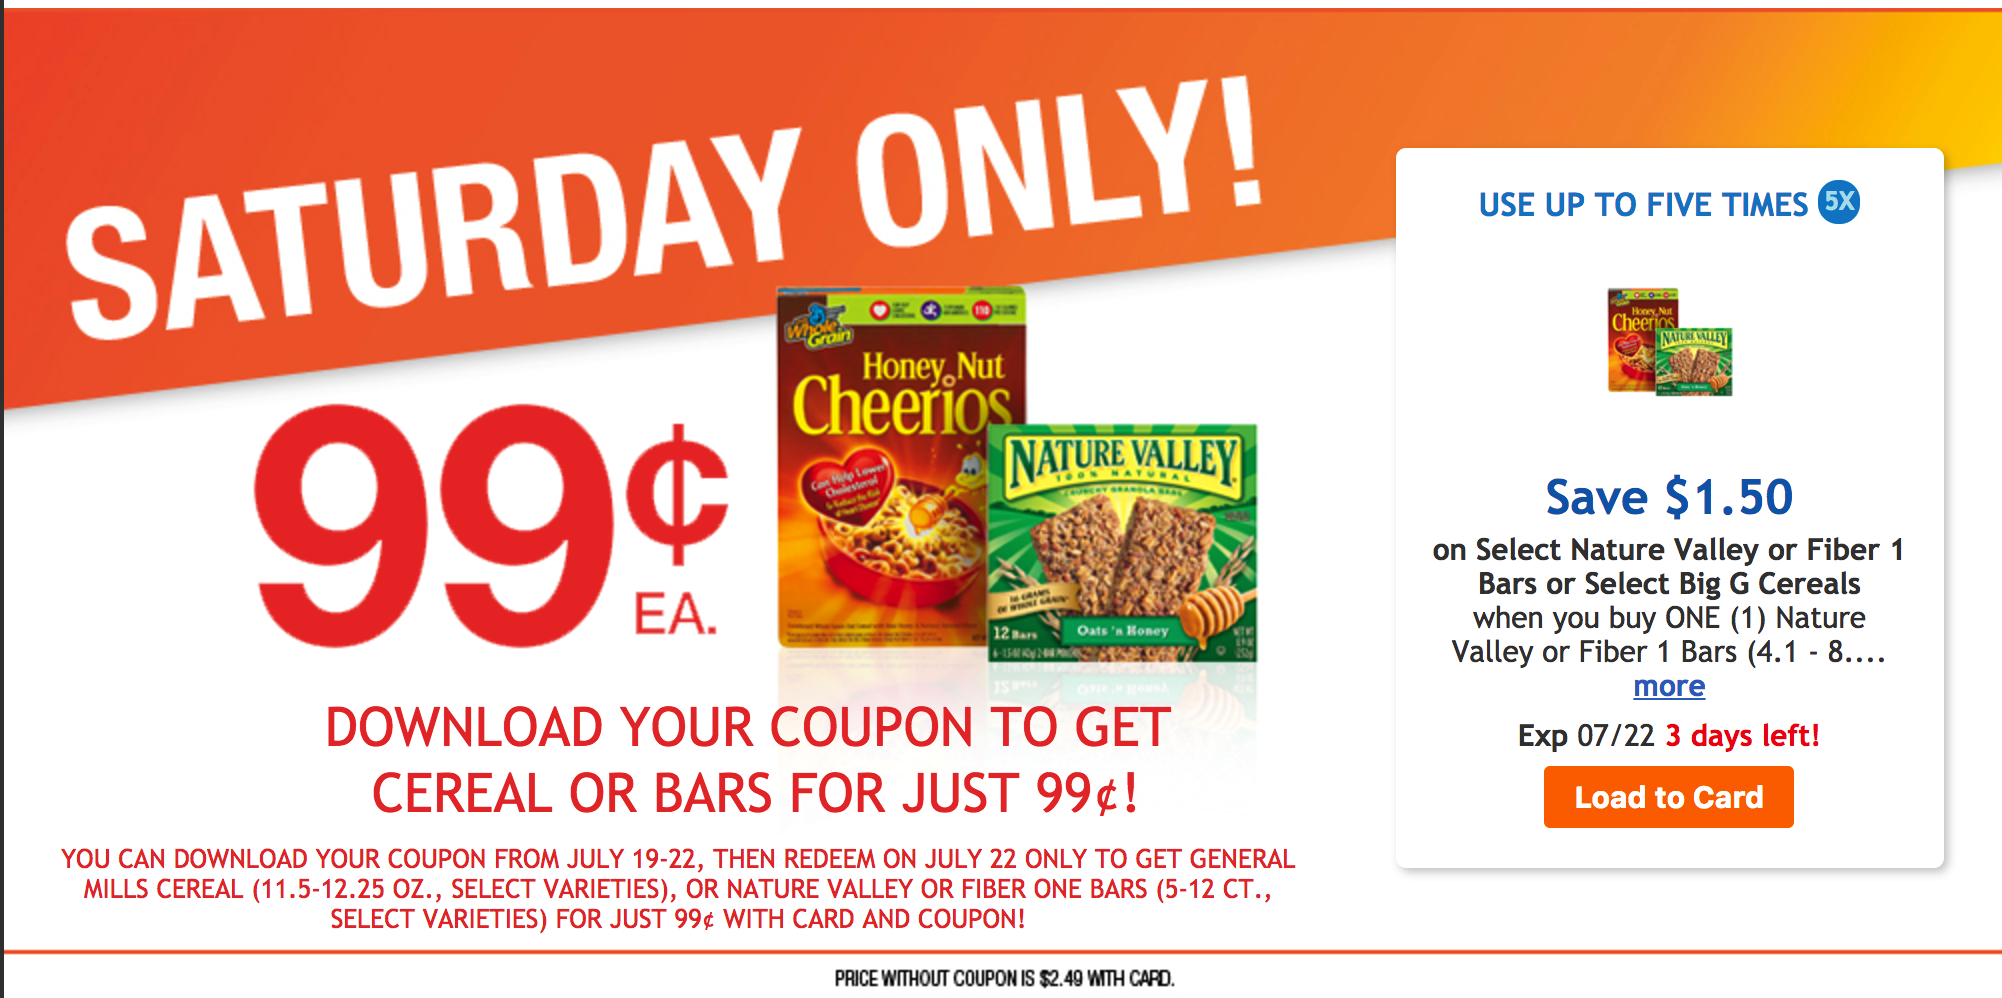 Cheerios Coupons Save $1.00